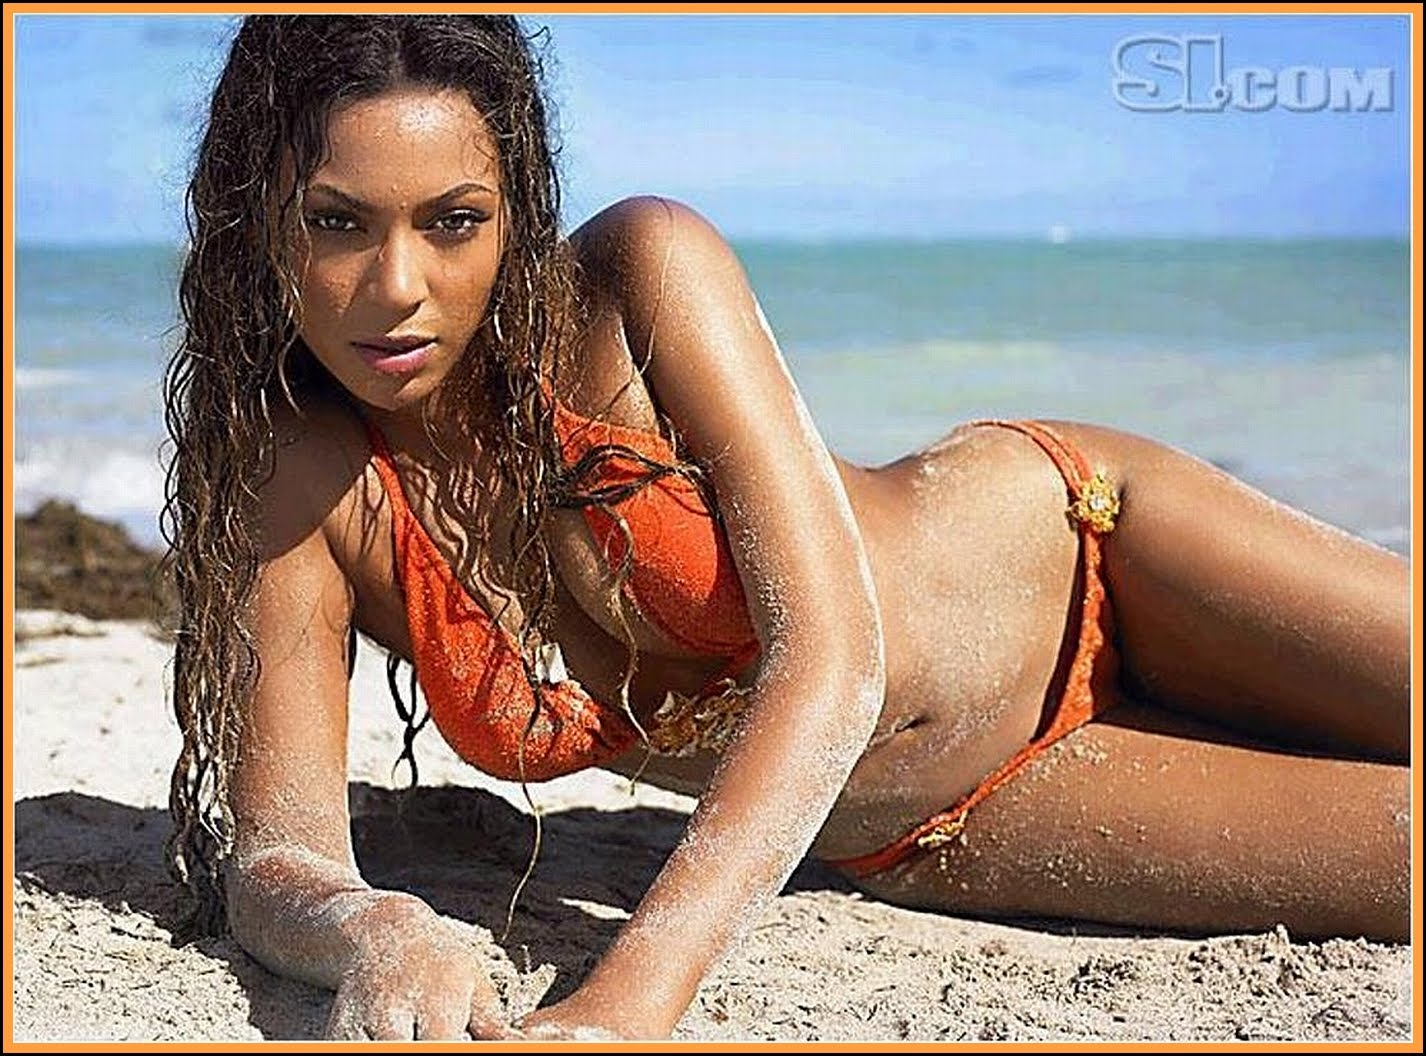 Beyonce Knowles Bikini Bodies Pic 22 of 35